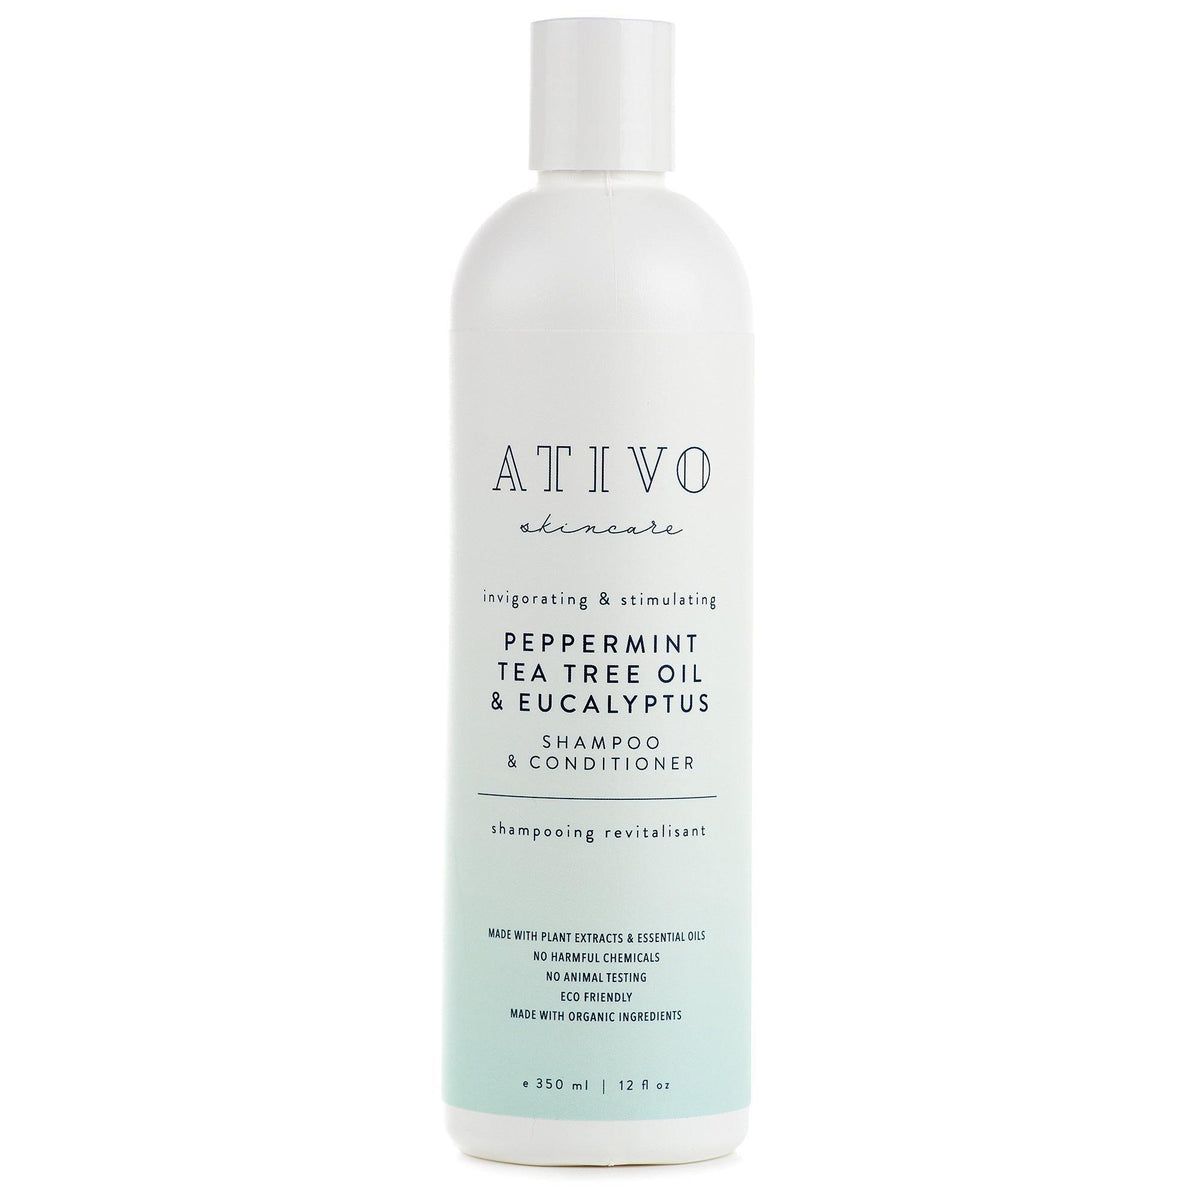 Peppermint Tea Tree Oil & Eucalyptus Shampoo / Conditioner - Ativo Skincare